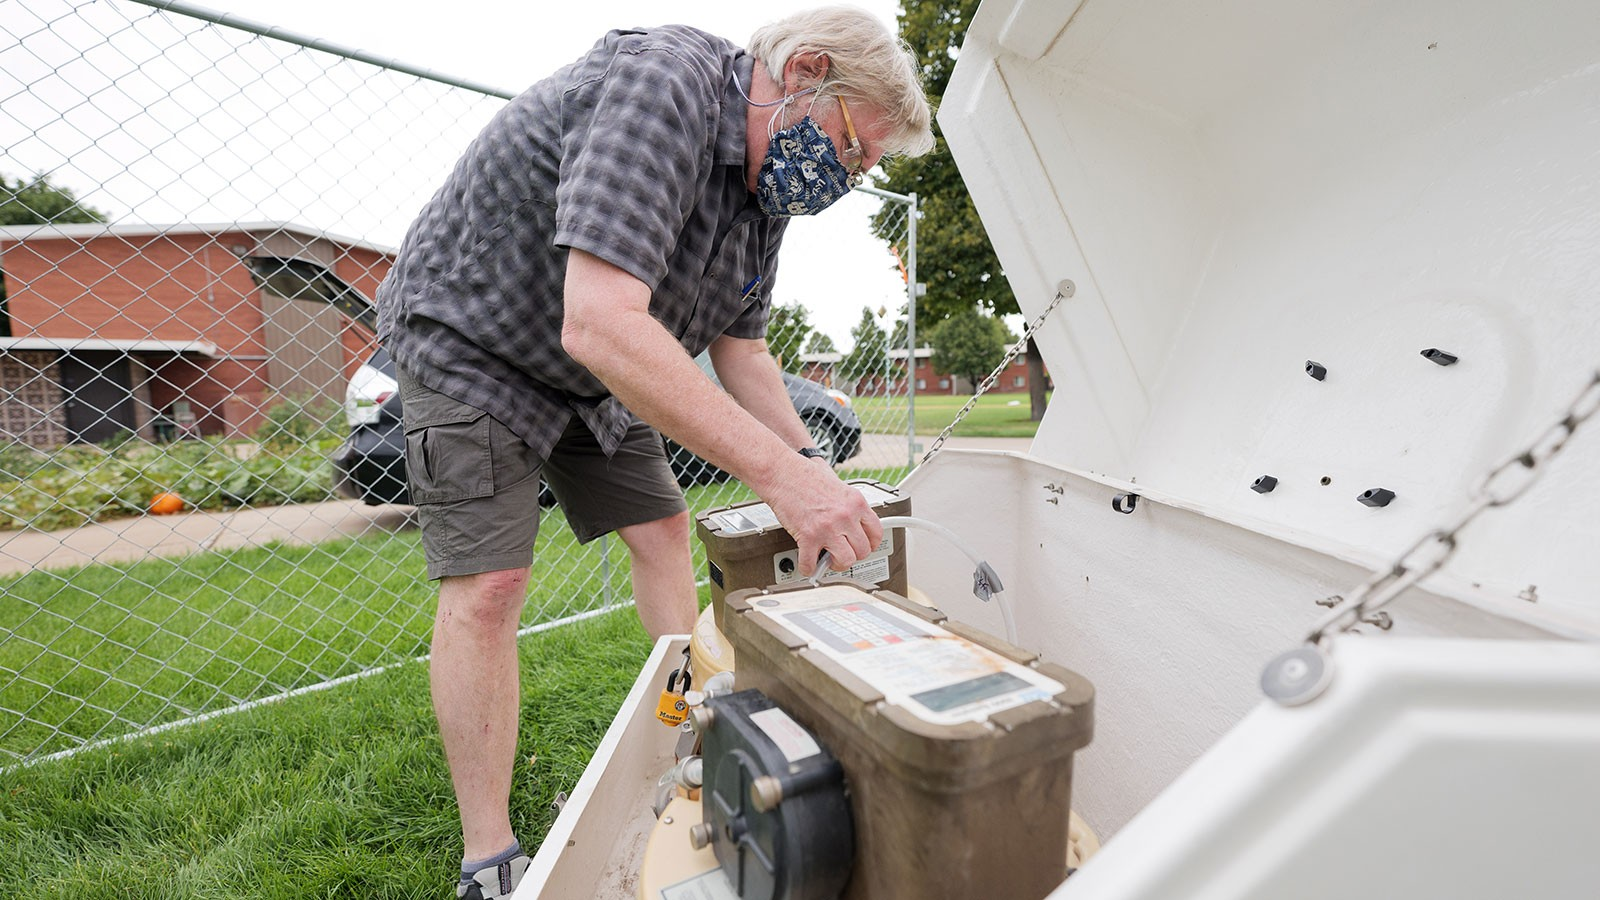 Professor Ryan Dupont sets up waste water collection apparatus